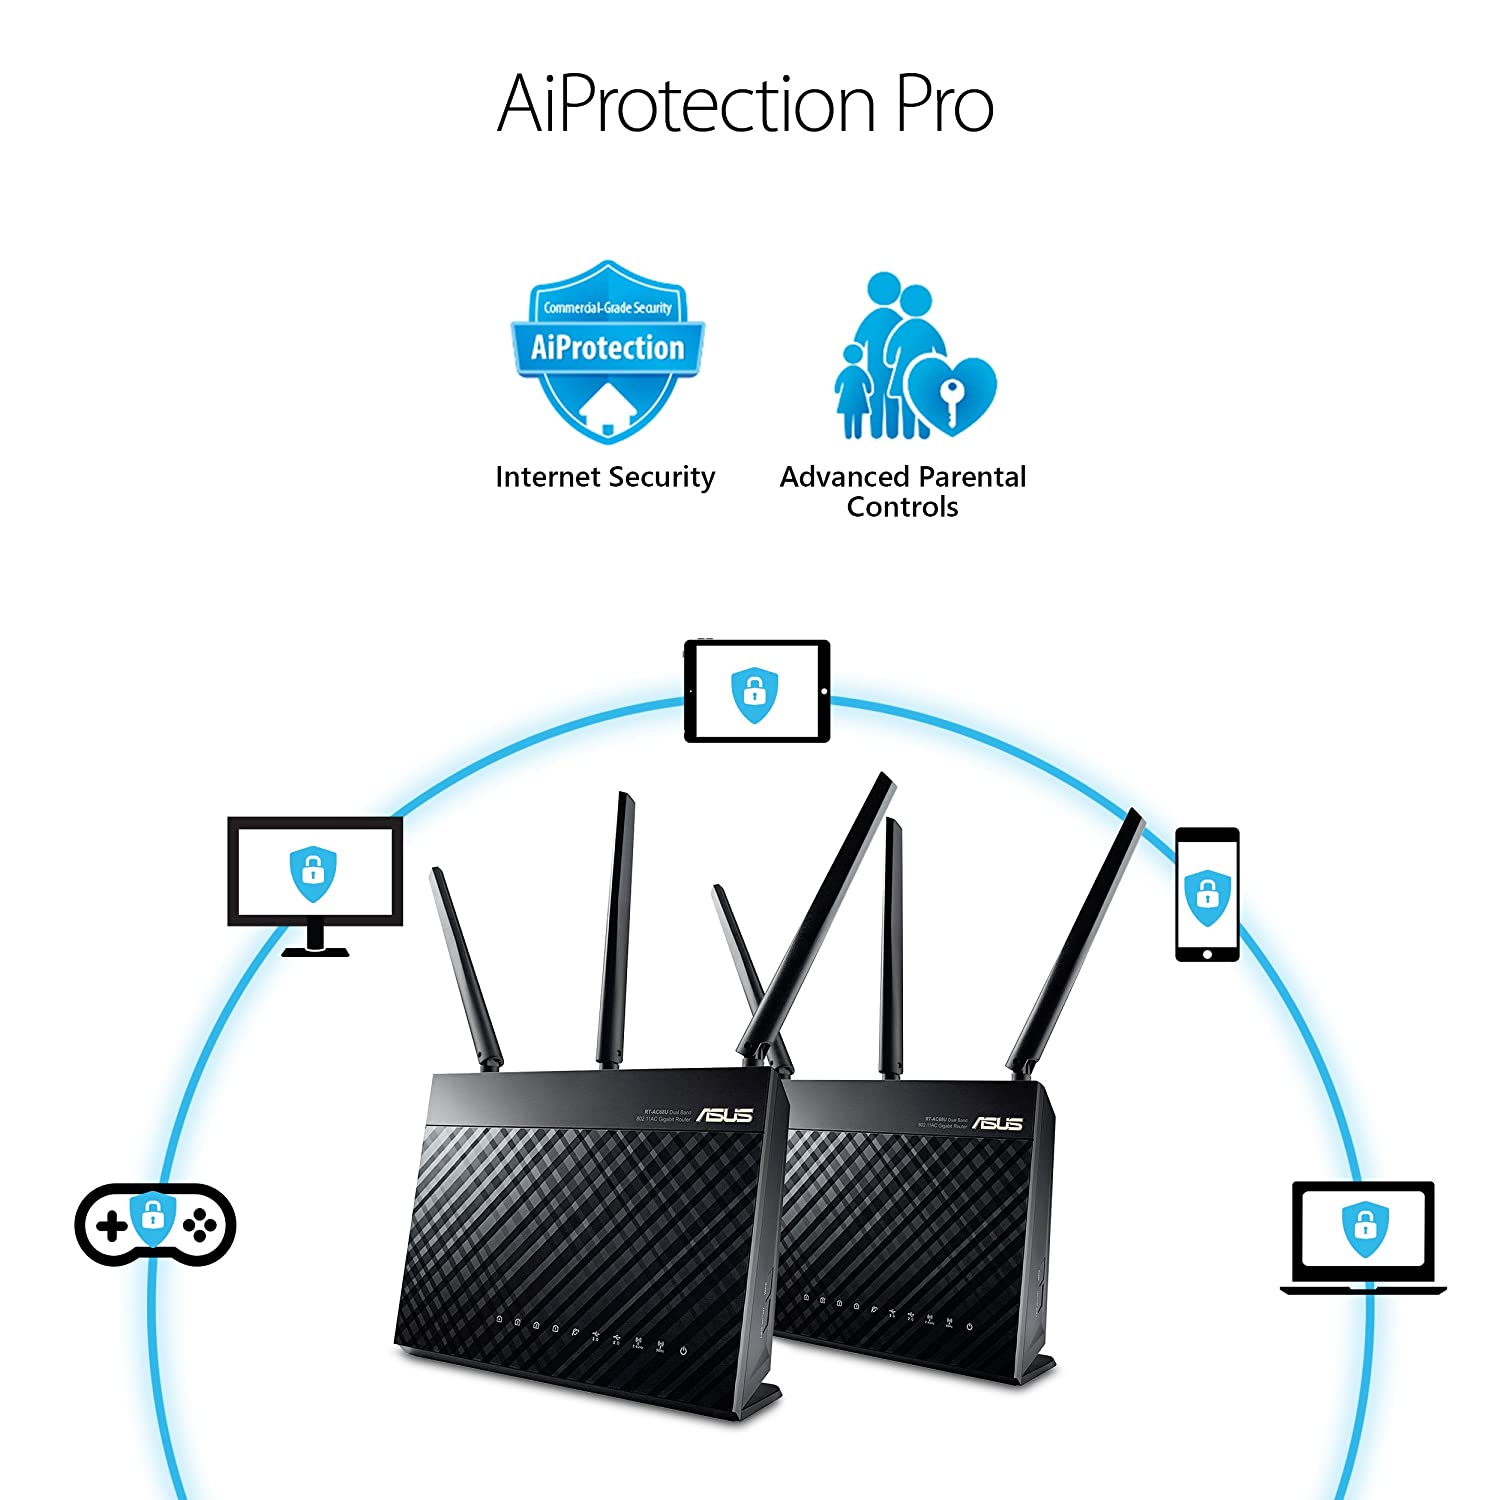 Asus Ac1900 Whole Home Dual Band Aimesh Router 2pk For Building Diagram Wireless Routers Mesh Wifi System Up To 1900 Mbps Aiprotection Network Security By Trend Micro